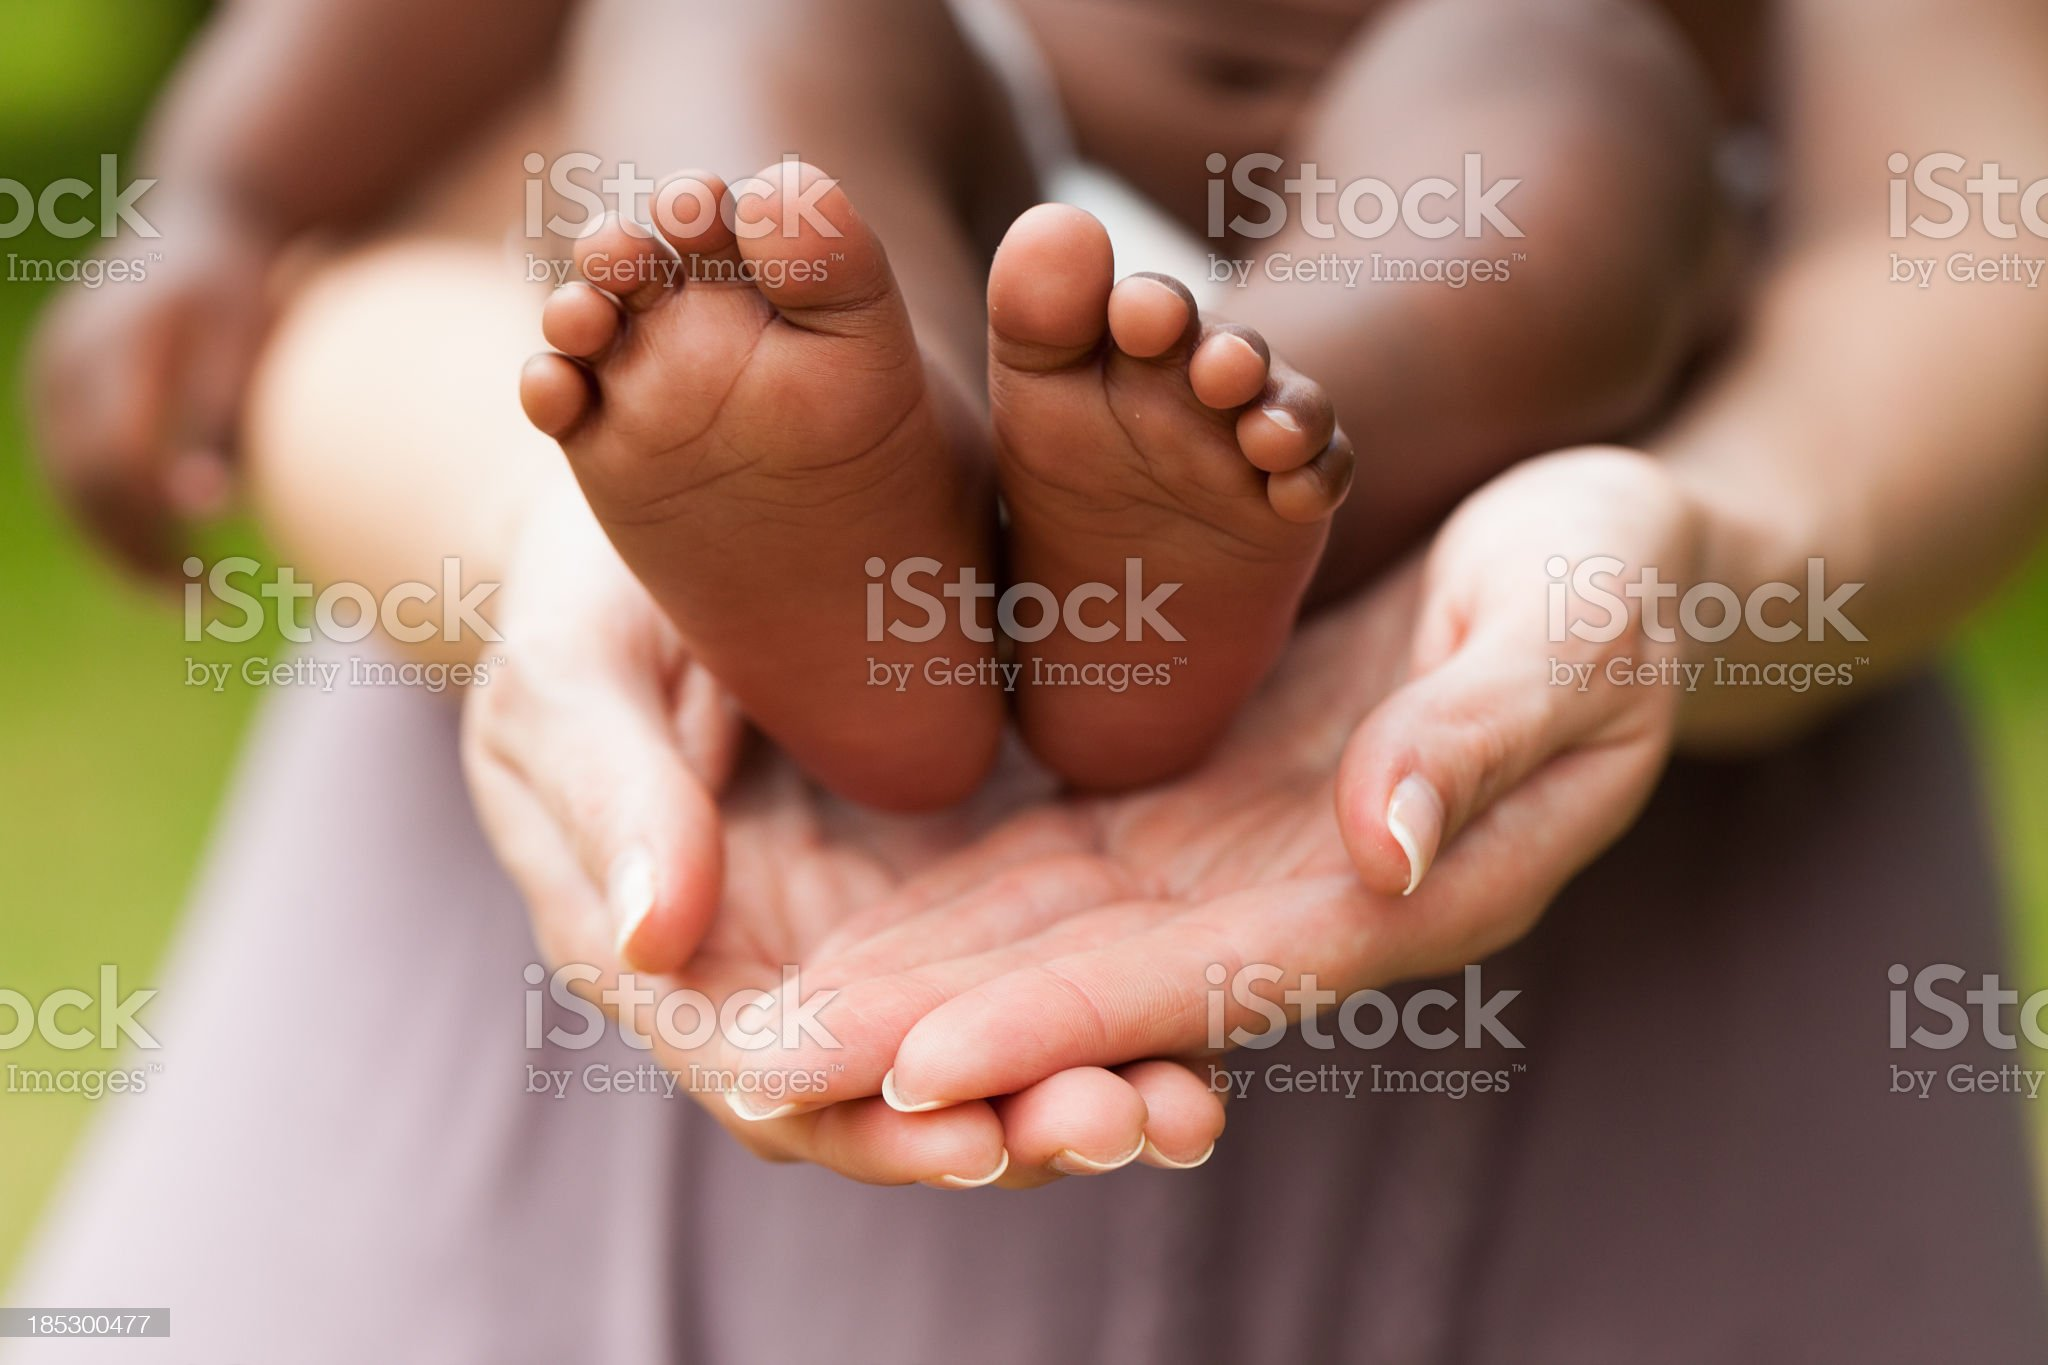 Adoption or a Baby Concept royalty-free stock photo